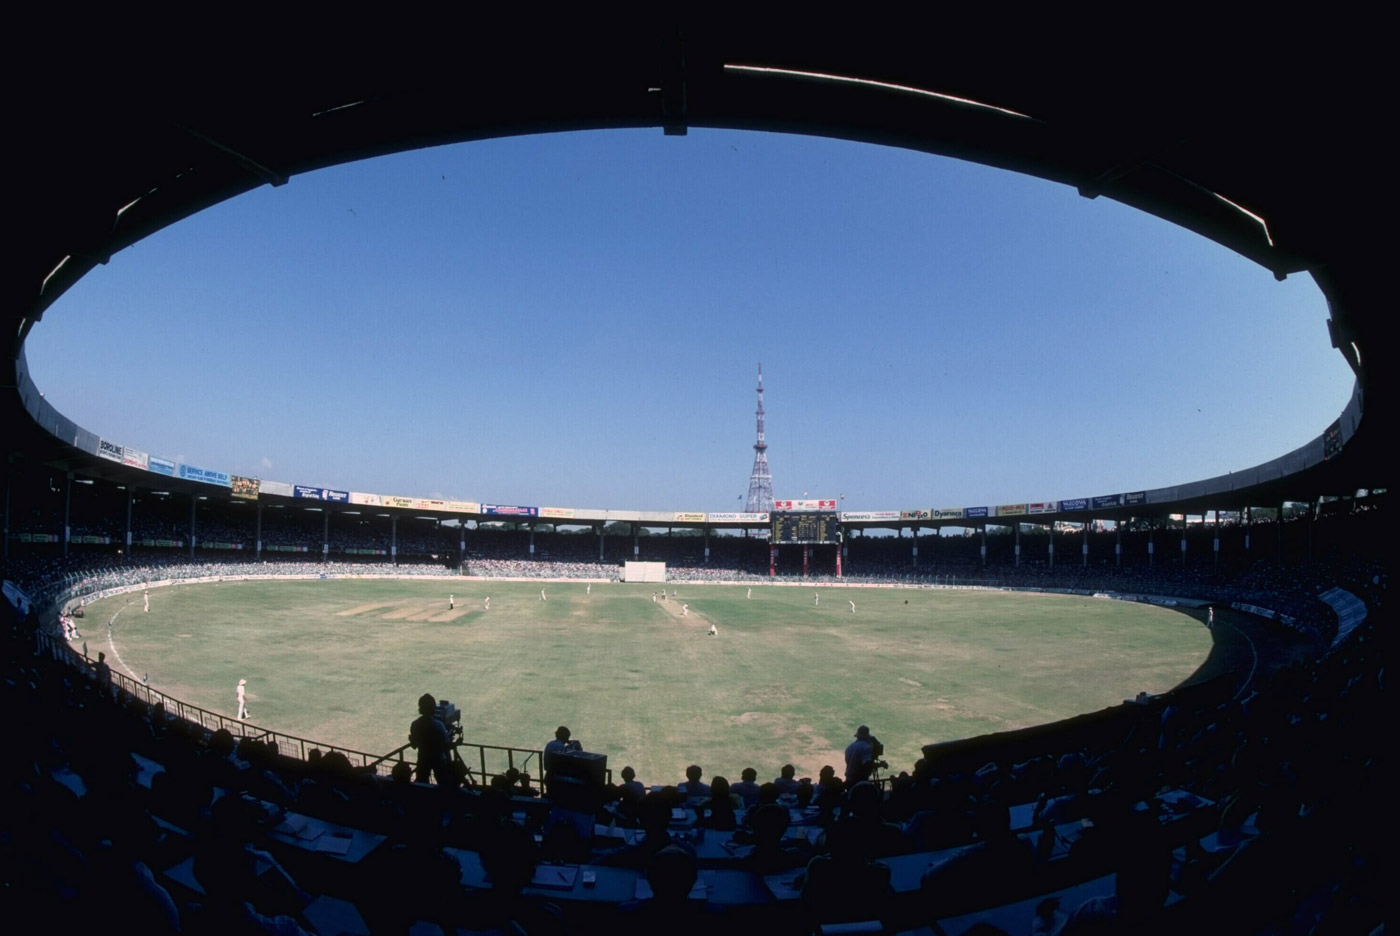 The Chepauk cauldron: the radiating heat from the concrete stadium structure could mess with your body and your mind